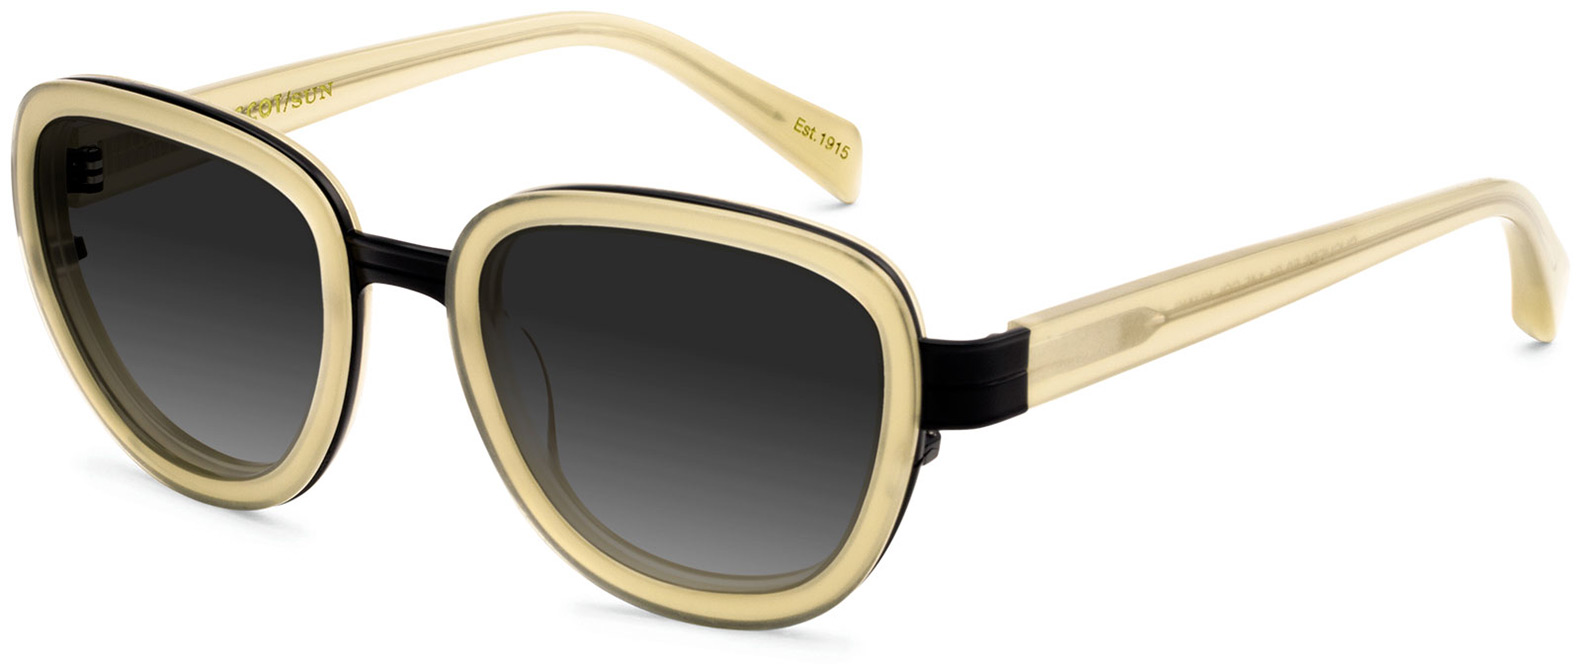 moscot-2013-sun-collection-sunglasses-26